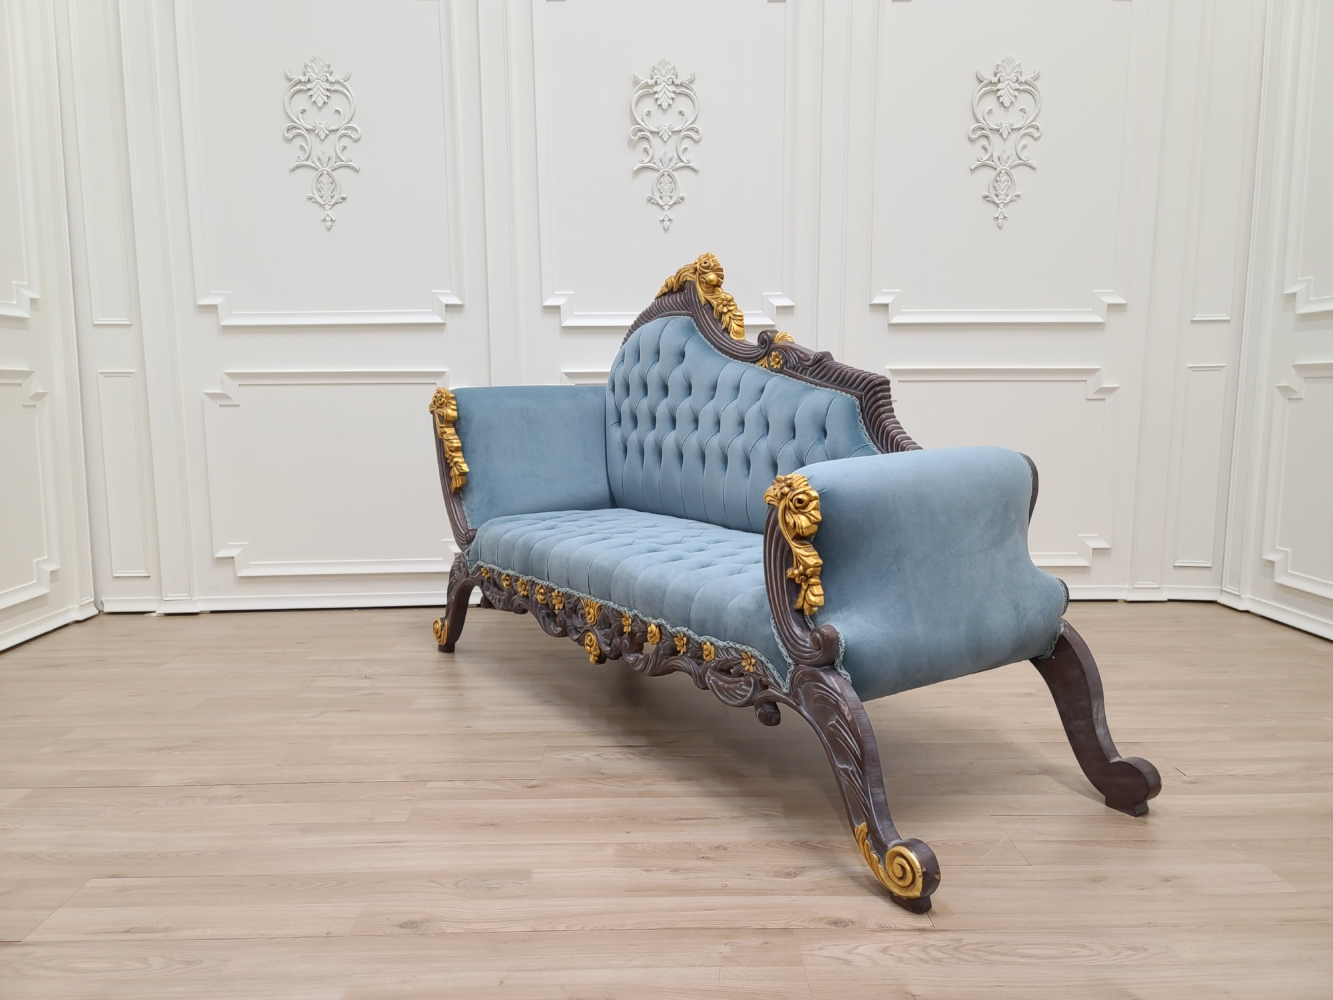 Made To Order / Victorian Style Chaise Lounge / Vintage Wood Finish/ Gold Leaf Accent / Hand Carved Wood Frame/ Tufted Light Blue Velvet Upholstered